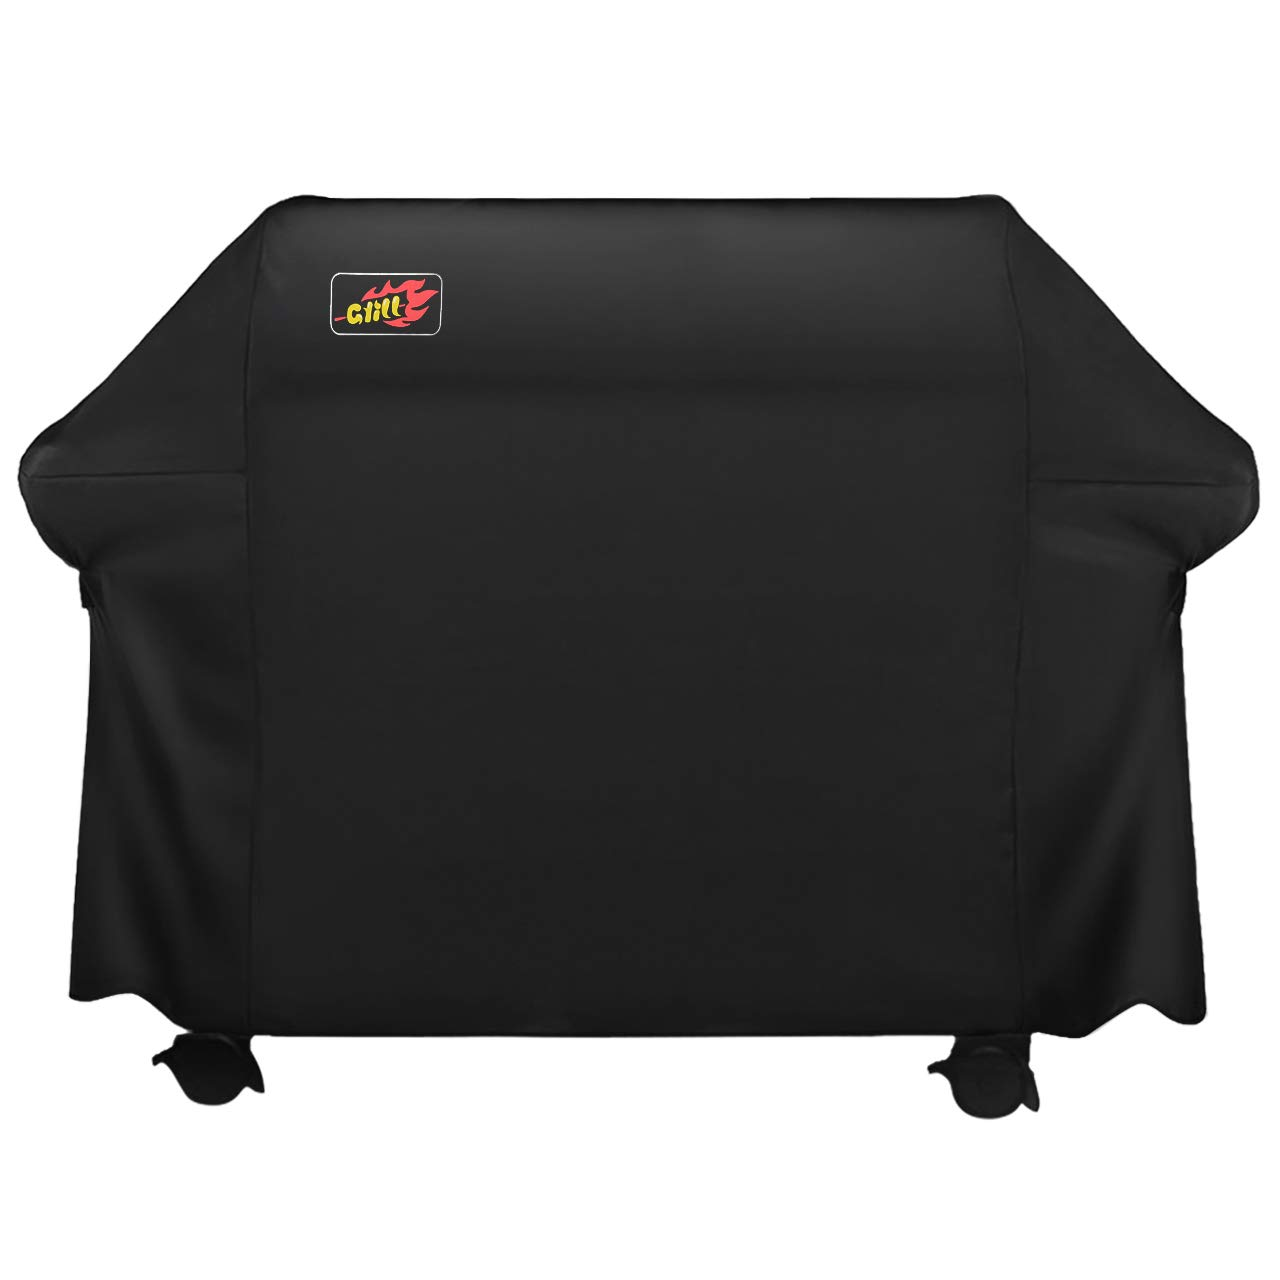 VicTsing 5+ Burner Grill Cover,BBQ Cover 72 inch, 600D Heavy Duty Gas Grill Cover for Weber,Char-Broil(UV/Dust/Water Resistant,Weather/Rip Resistant),XXL Large by VicTsing